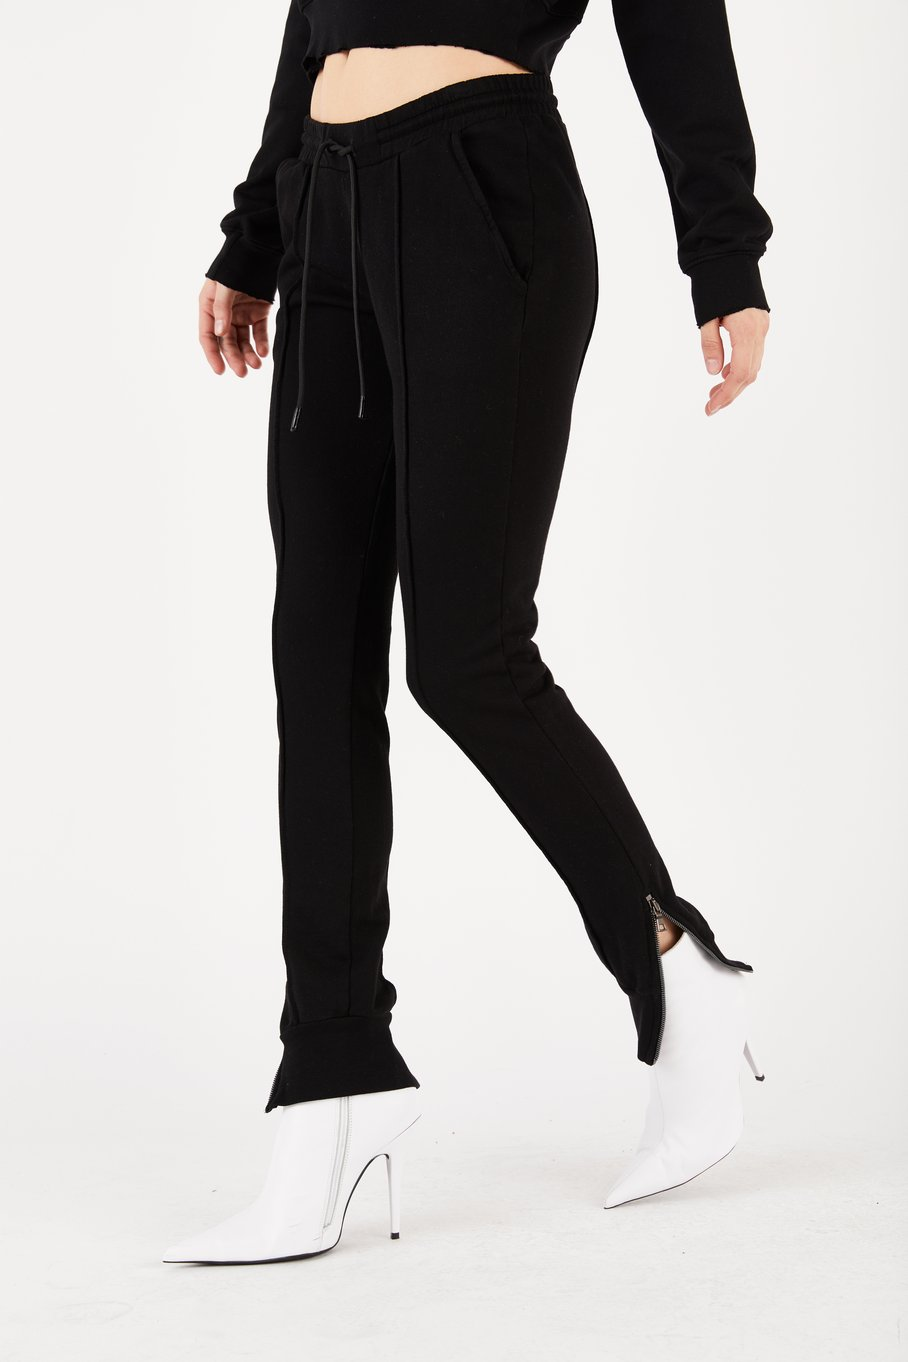 Milan Jogger by Cotton Citizen, available on cottoncitizen.com for $112 Kylie Jenner Pants Exact Product